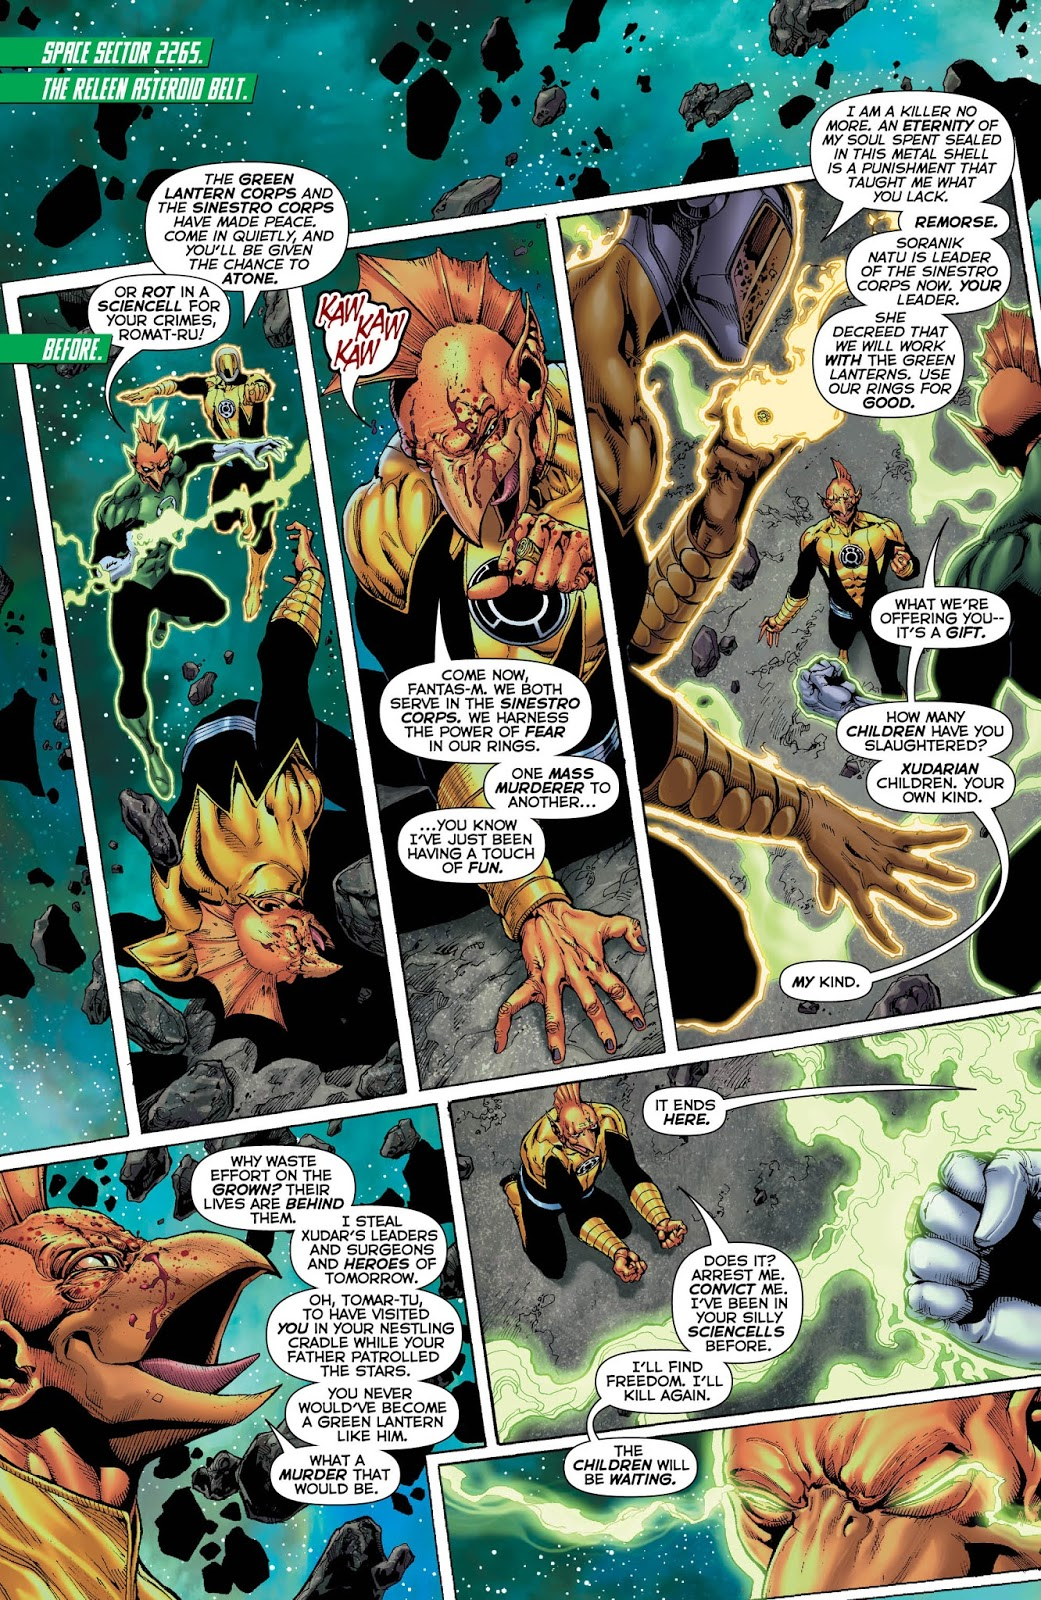 Weird Science Hal Dc And The Green Lantern Jordan Corps Comics Review 24 spoilers